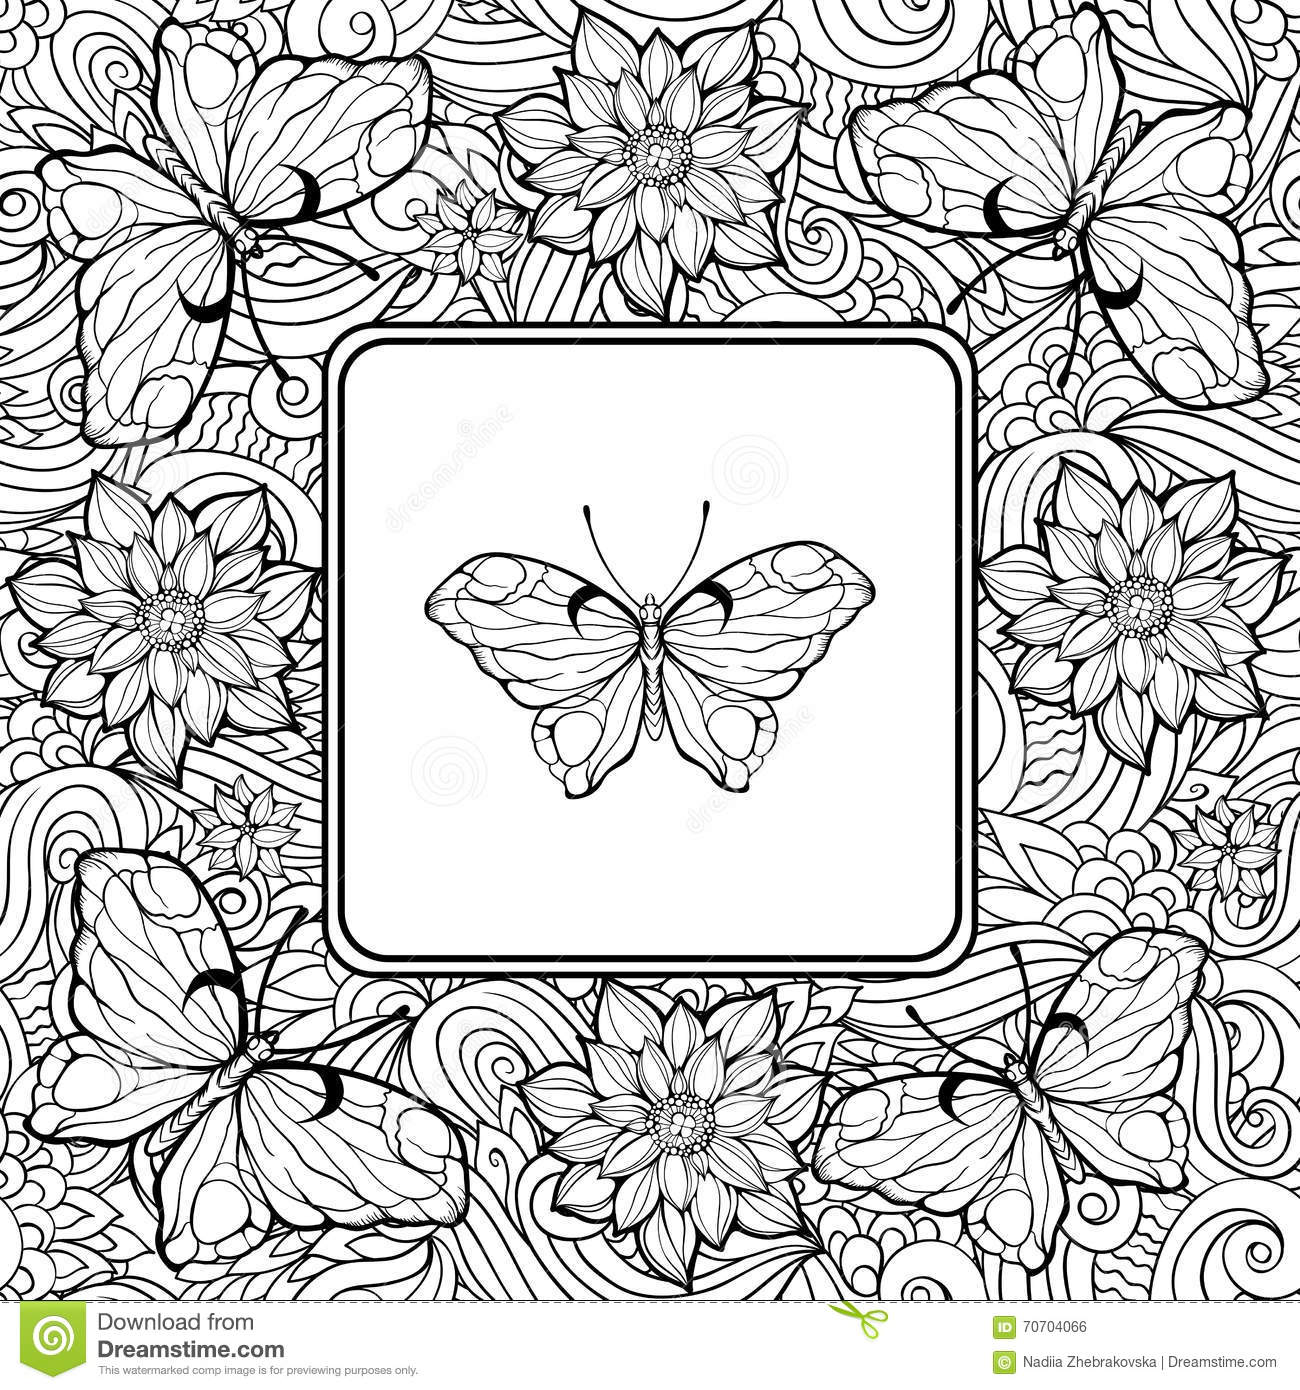 Coloring Page With Butterfly In The Center And Pattern Of Flower ...